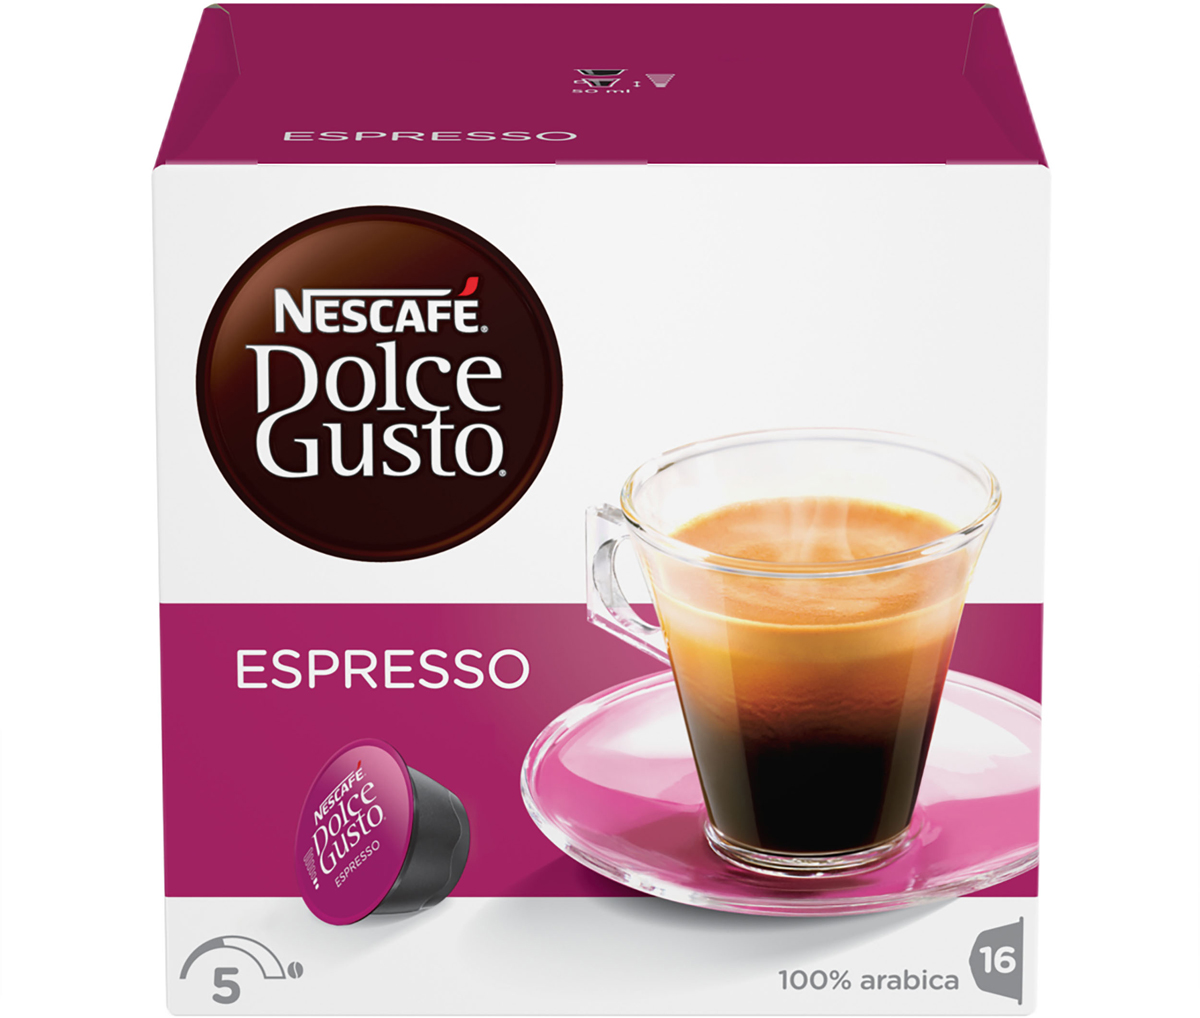 Nescafe Dolce Gusto Espresso кофе в капсулах, 16 шт 2017new full set taekwondo protectors karate shin guard arm protector helmet body chest protector groin crotch protective guards